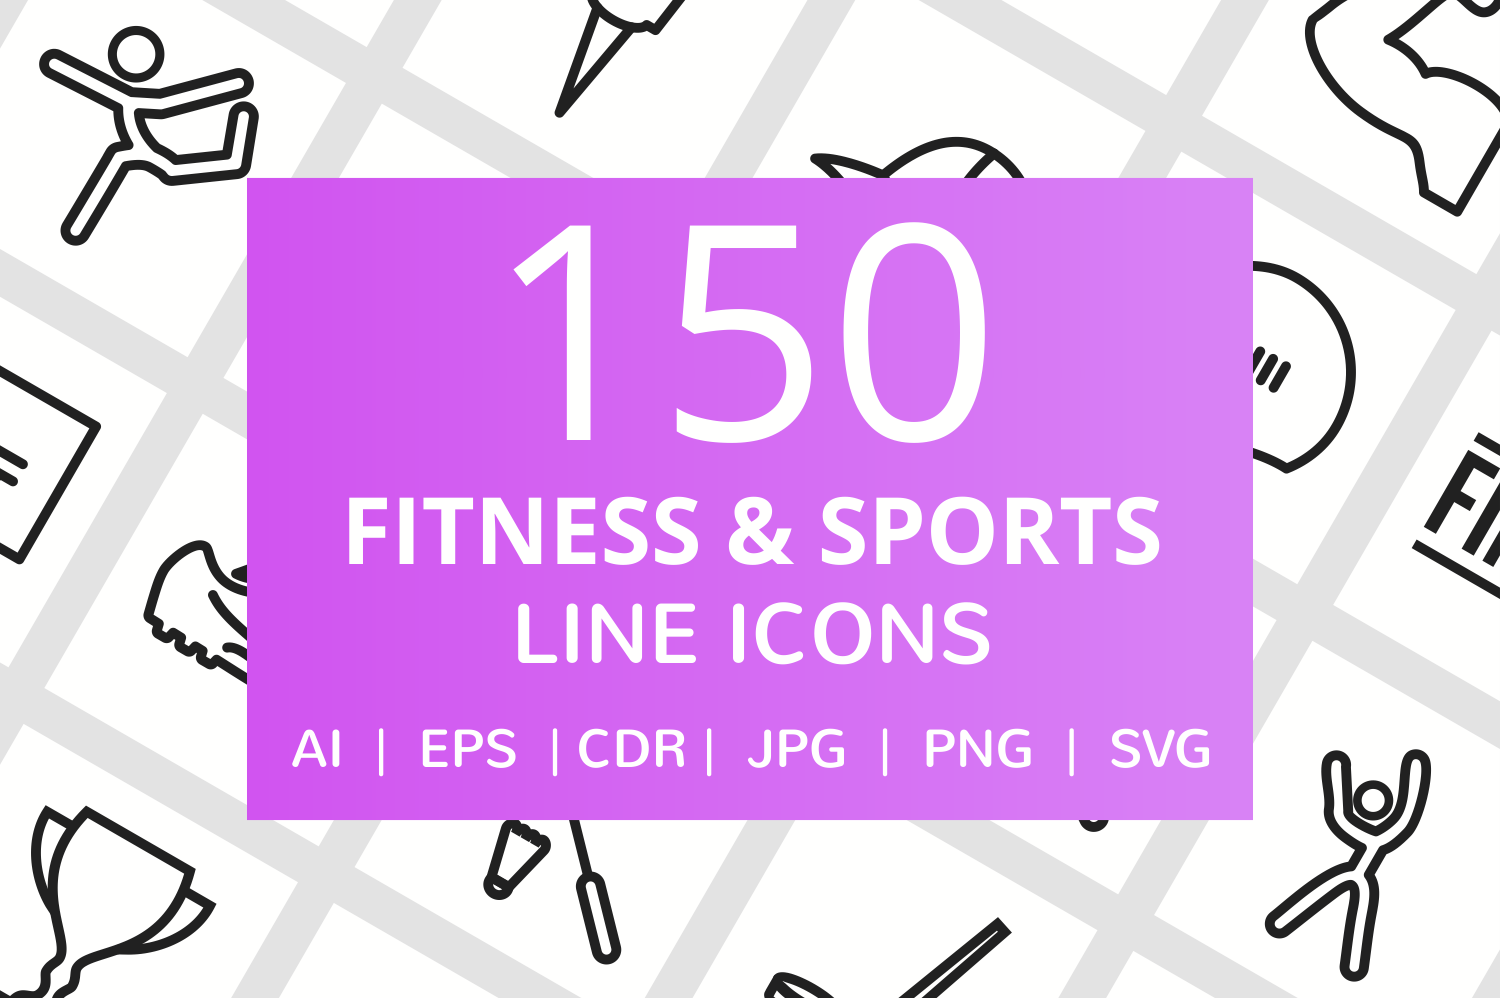 150 Fitness & Sports Line Icons example image 1